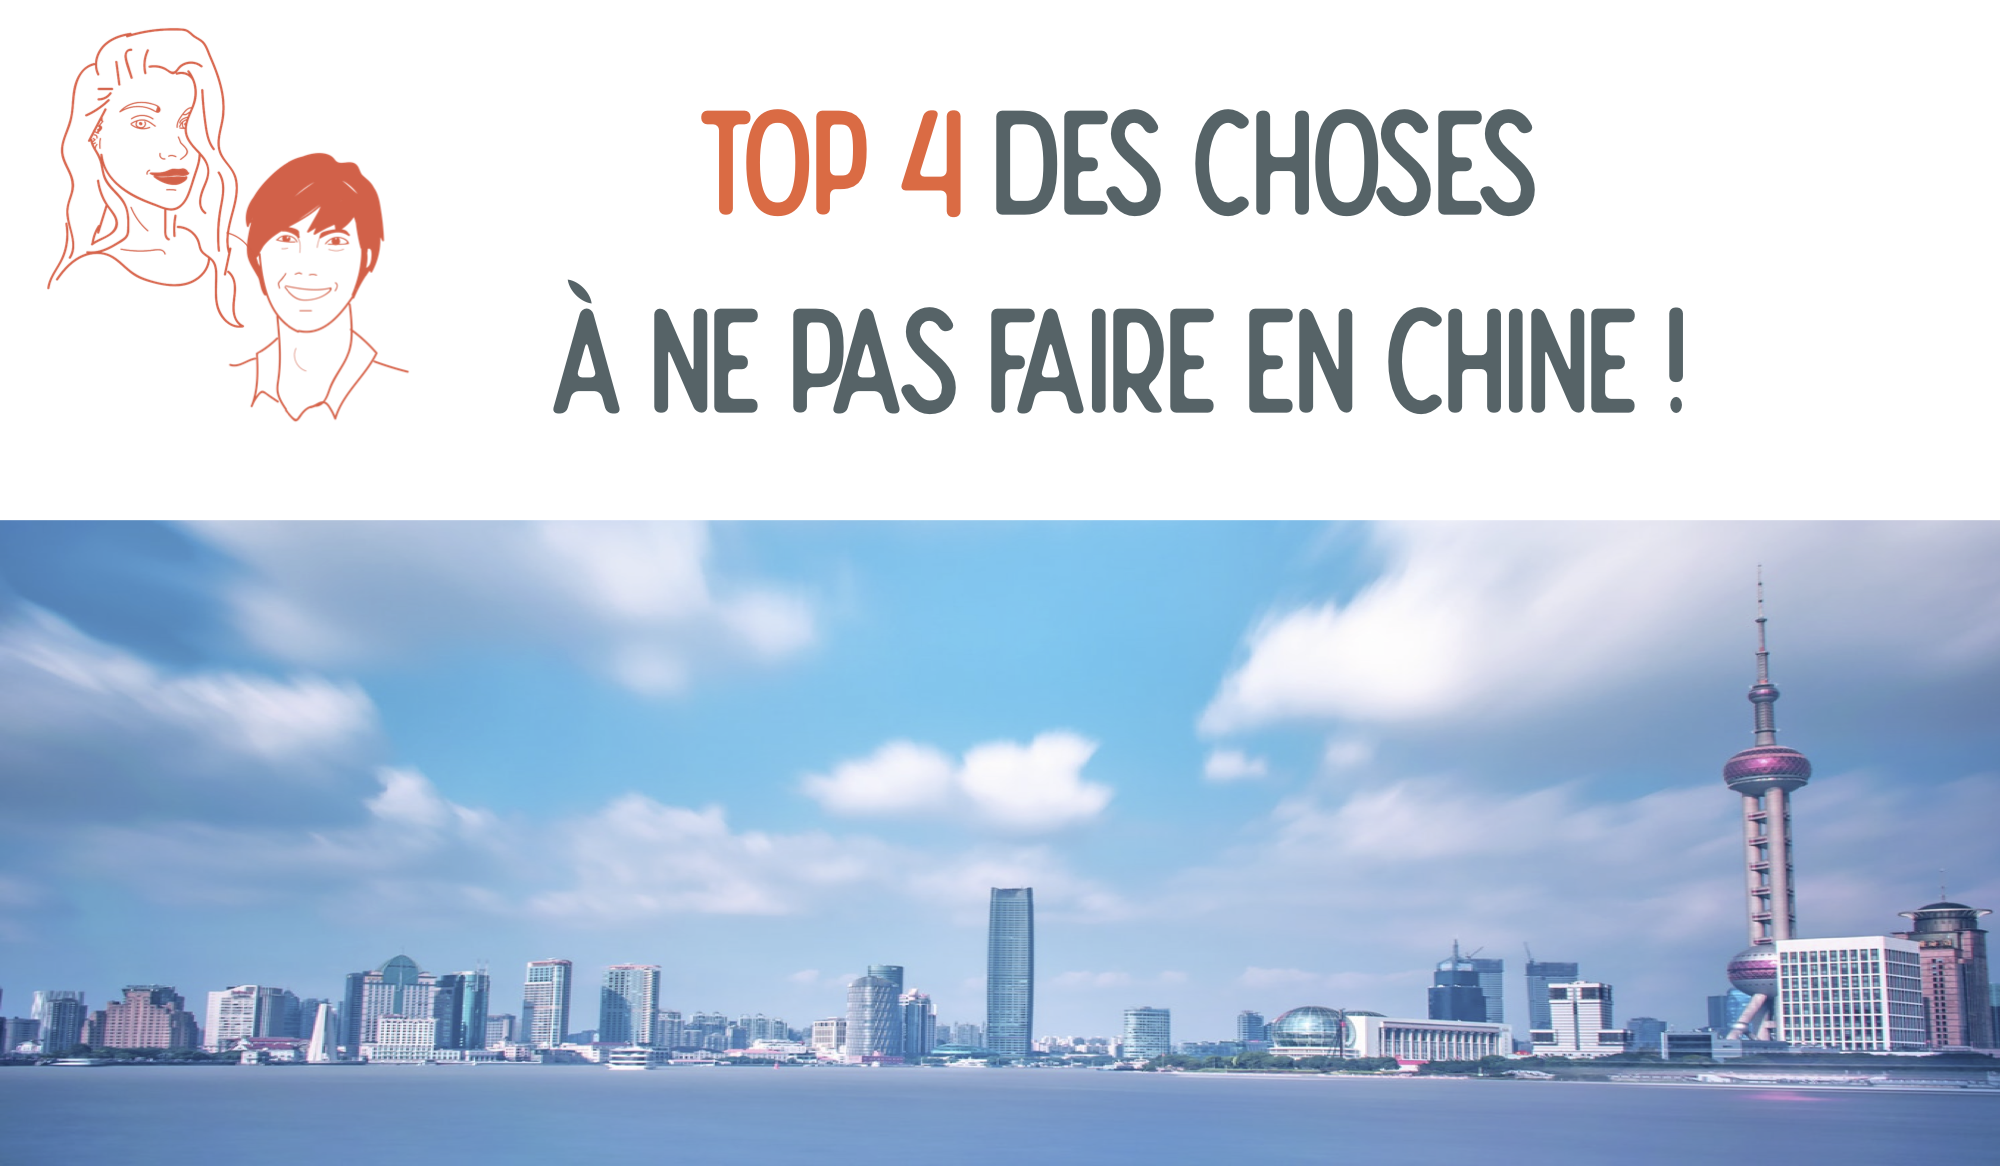 choses à ne pas faire en chine